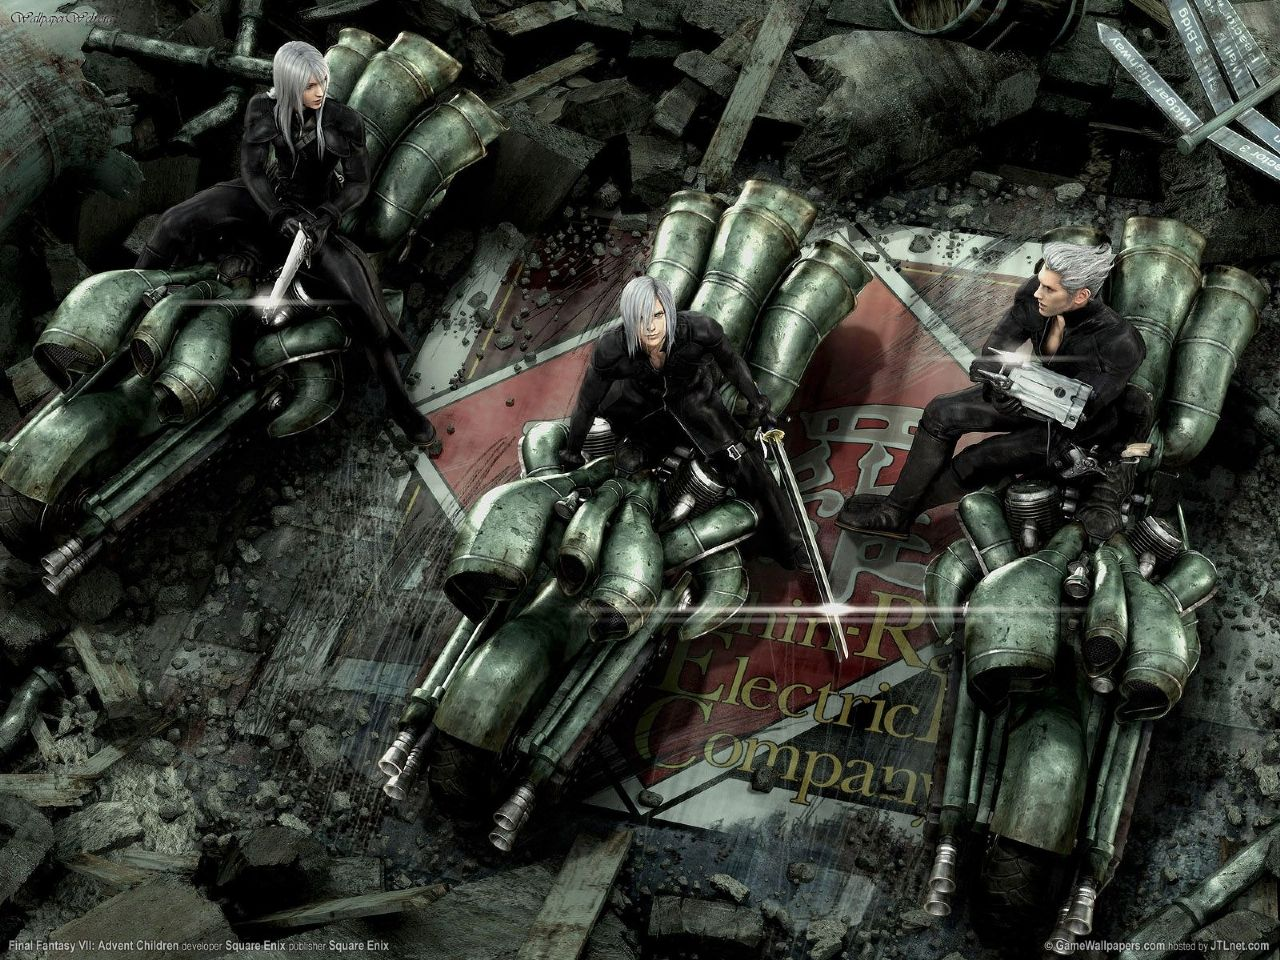 http://2.bp.blogspot.com/-VgbleQ5F21I/UFfnGUet6FI/AAAAAAAAE0s/bnBoH2vX8do/s1600/wallpaper_final_fantasy_vii_advent_children_03_1600_1280x960.jpg